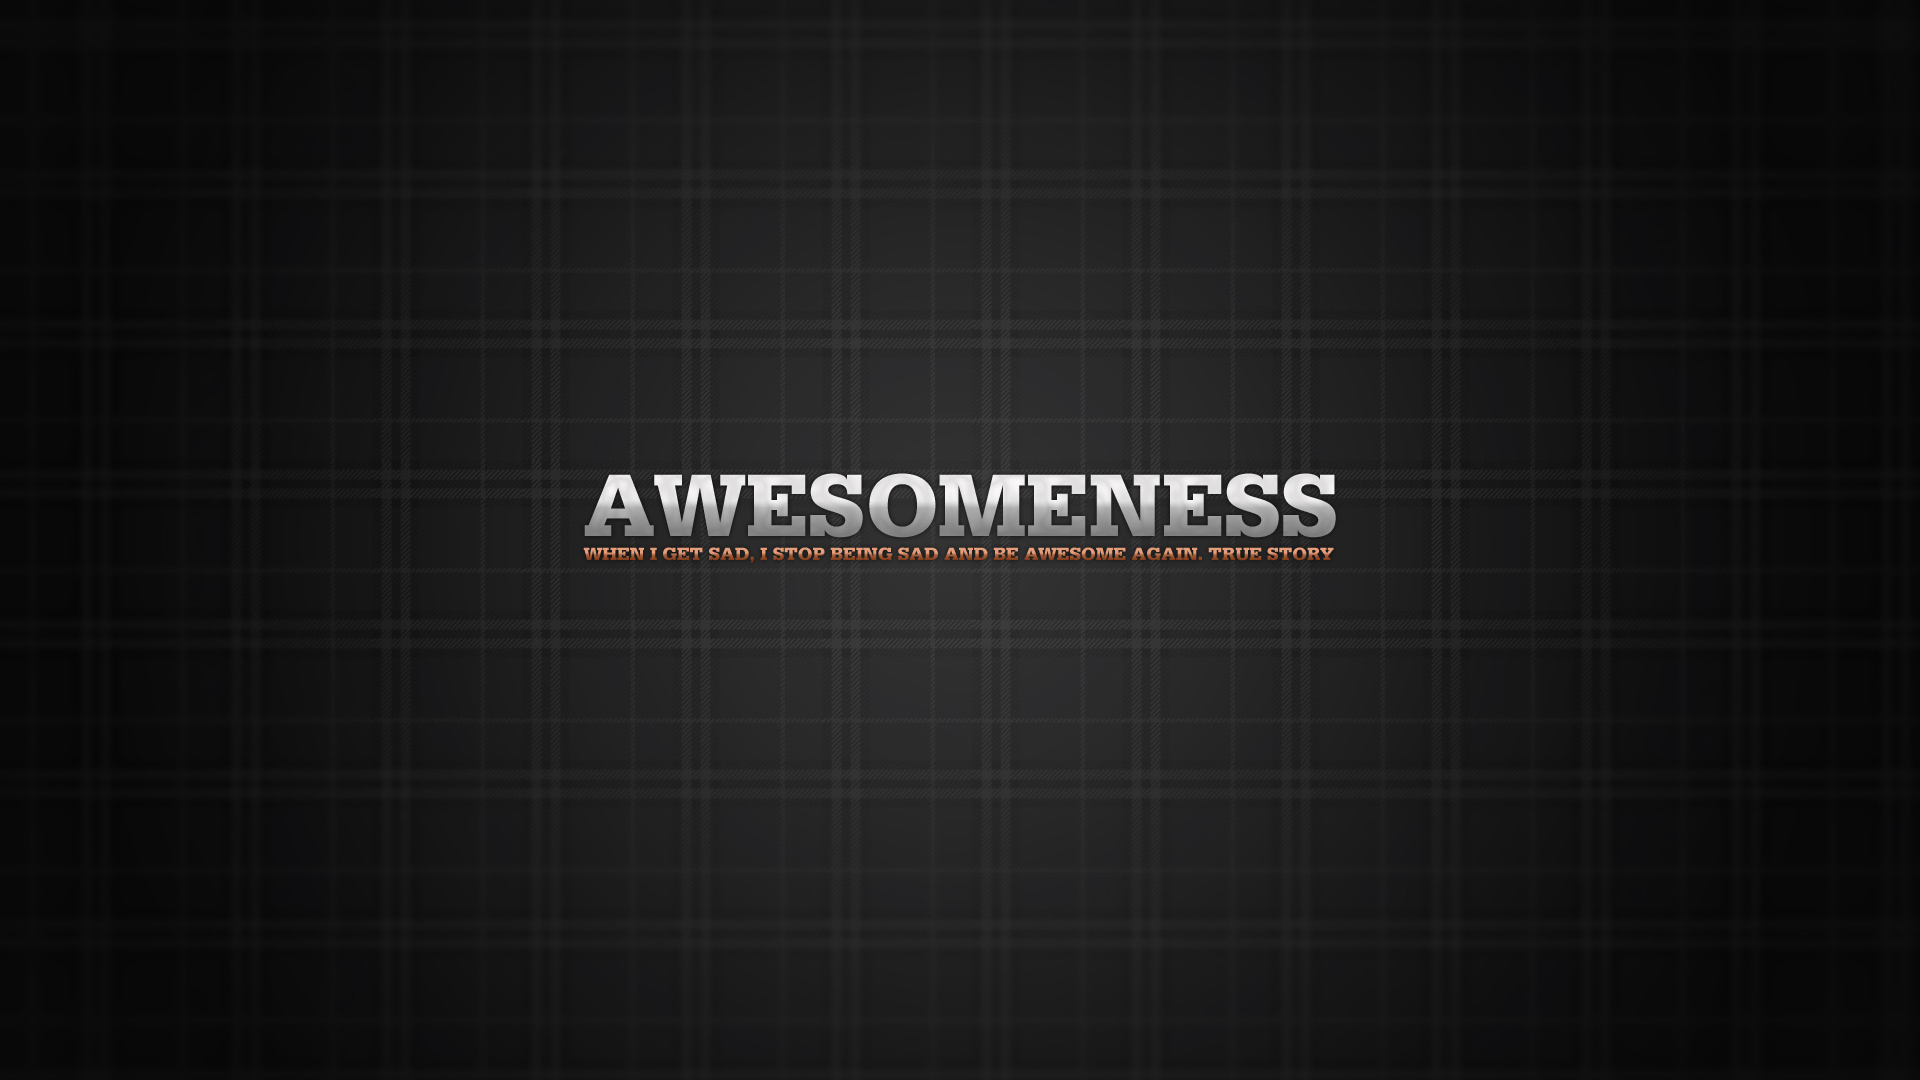 funny story computer backgrounds quote awesomeness wallpaper 1920x1080